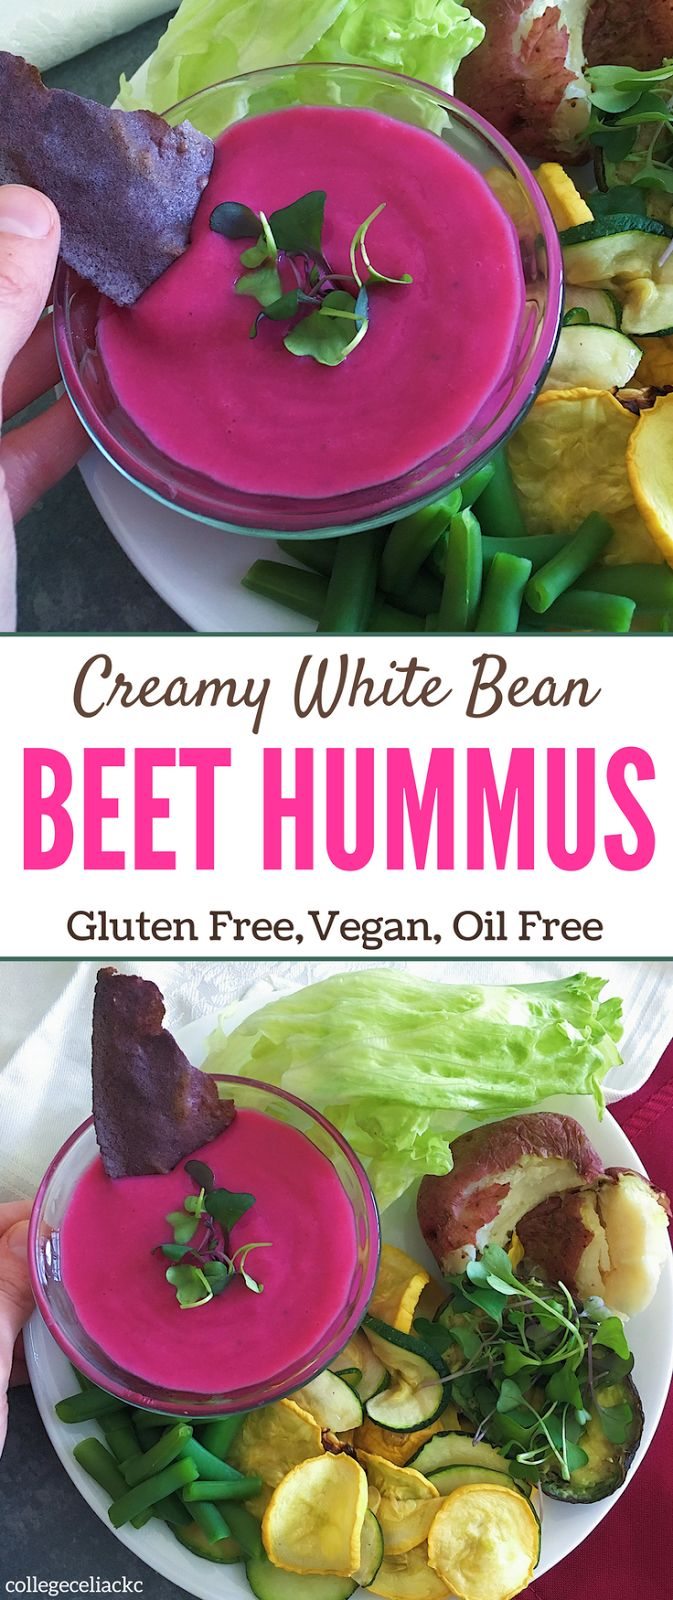 Is hummus vegan? Is hummus gluten free? Well, this creamy white bean beet hummus recipe is both - and it's as delicious as it is allergy friendly! This vegan hummus uses white navy beans instead of chickpeas and features beets for a gorgeous pink color (and some extra nutrition). If you're looking for a simple hummus recipe that's perfect for a gluten free or vegan diet, this gluten free dip is exactly what you need.